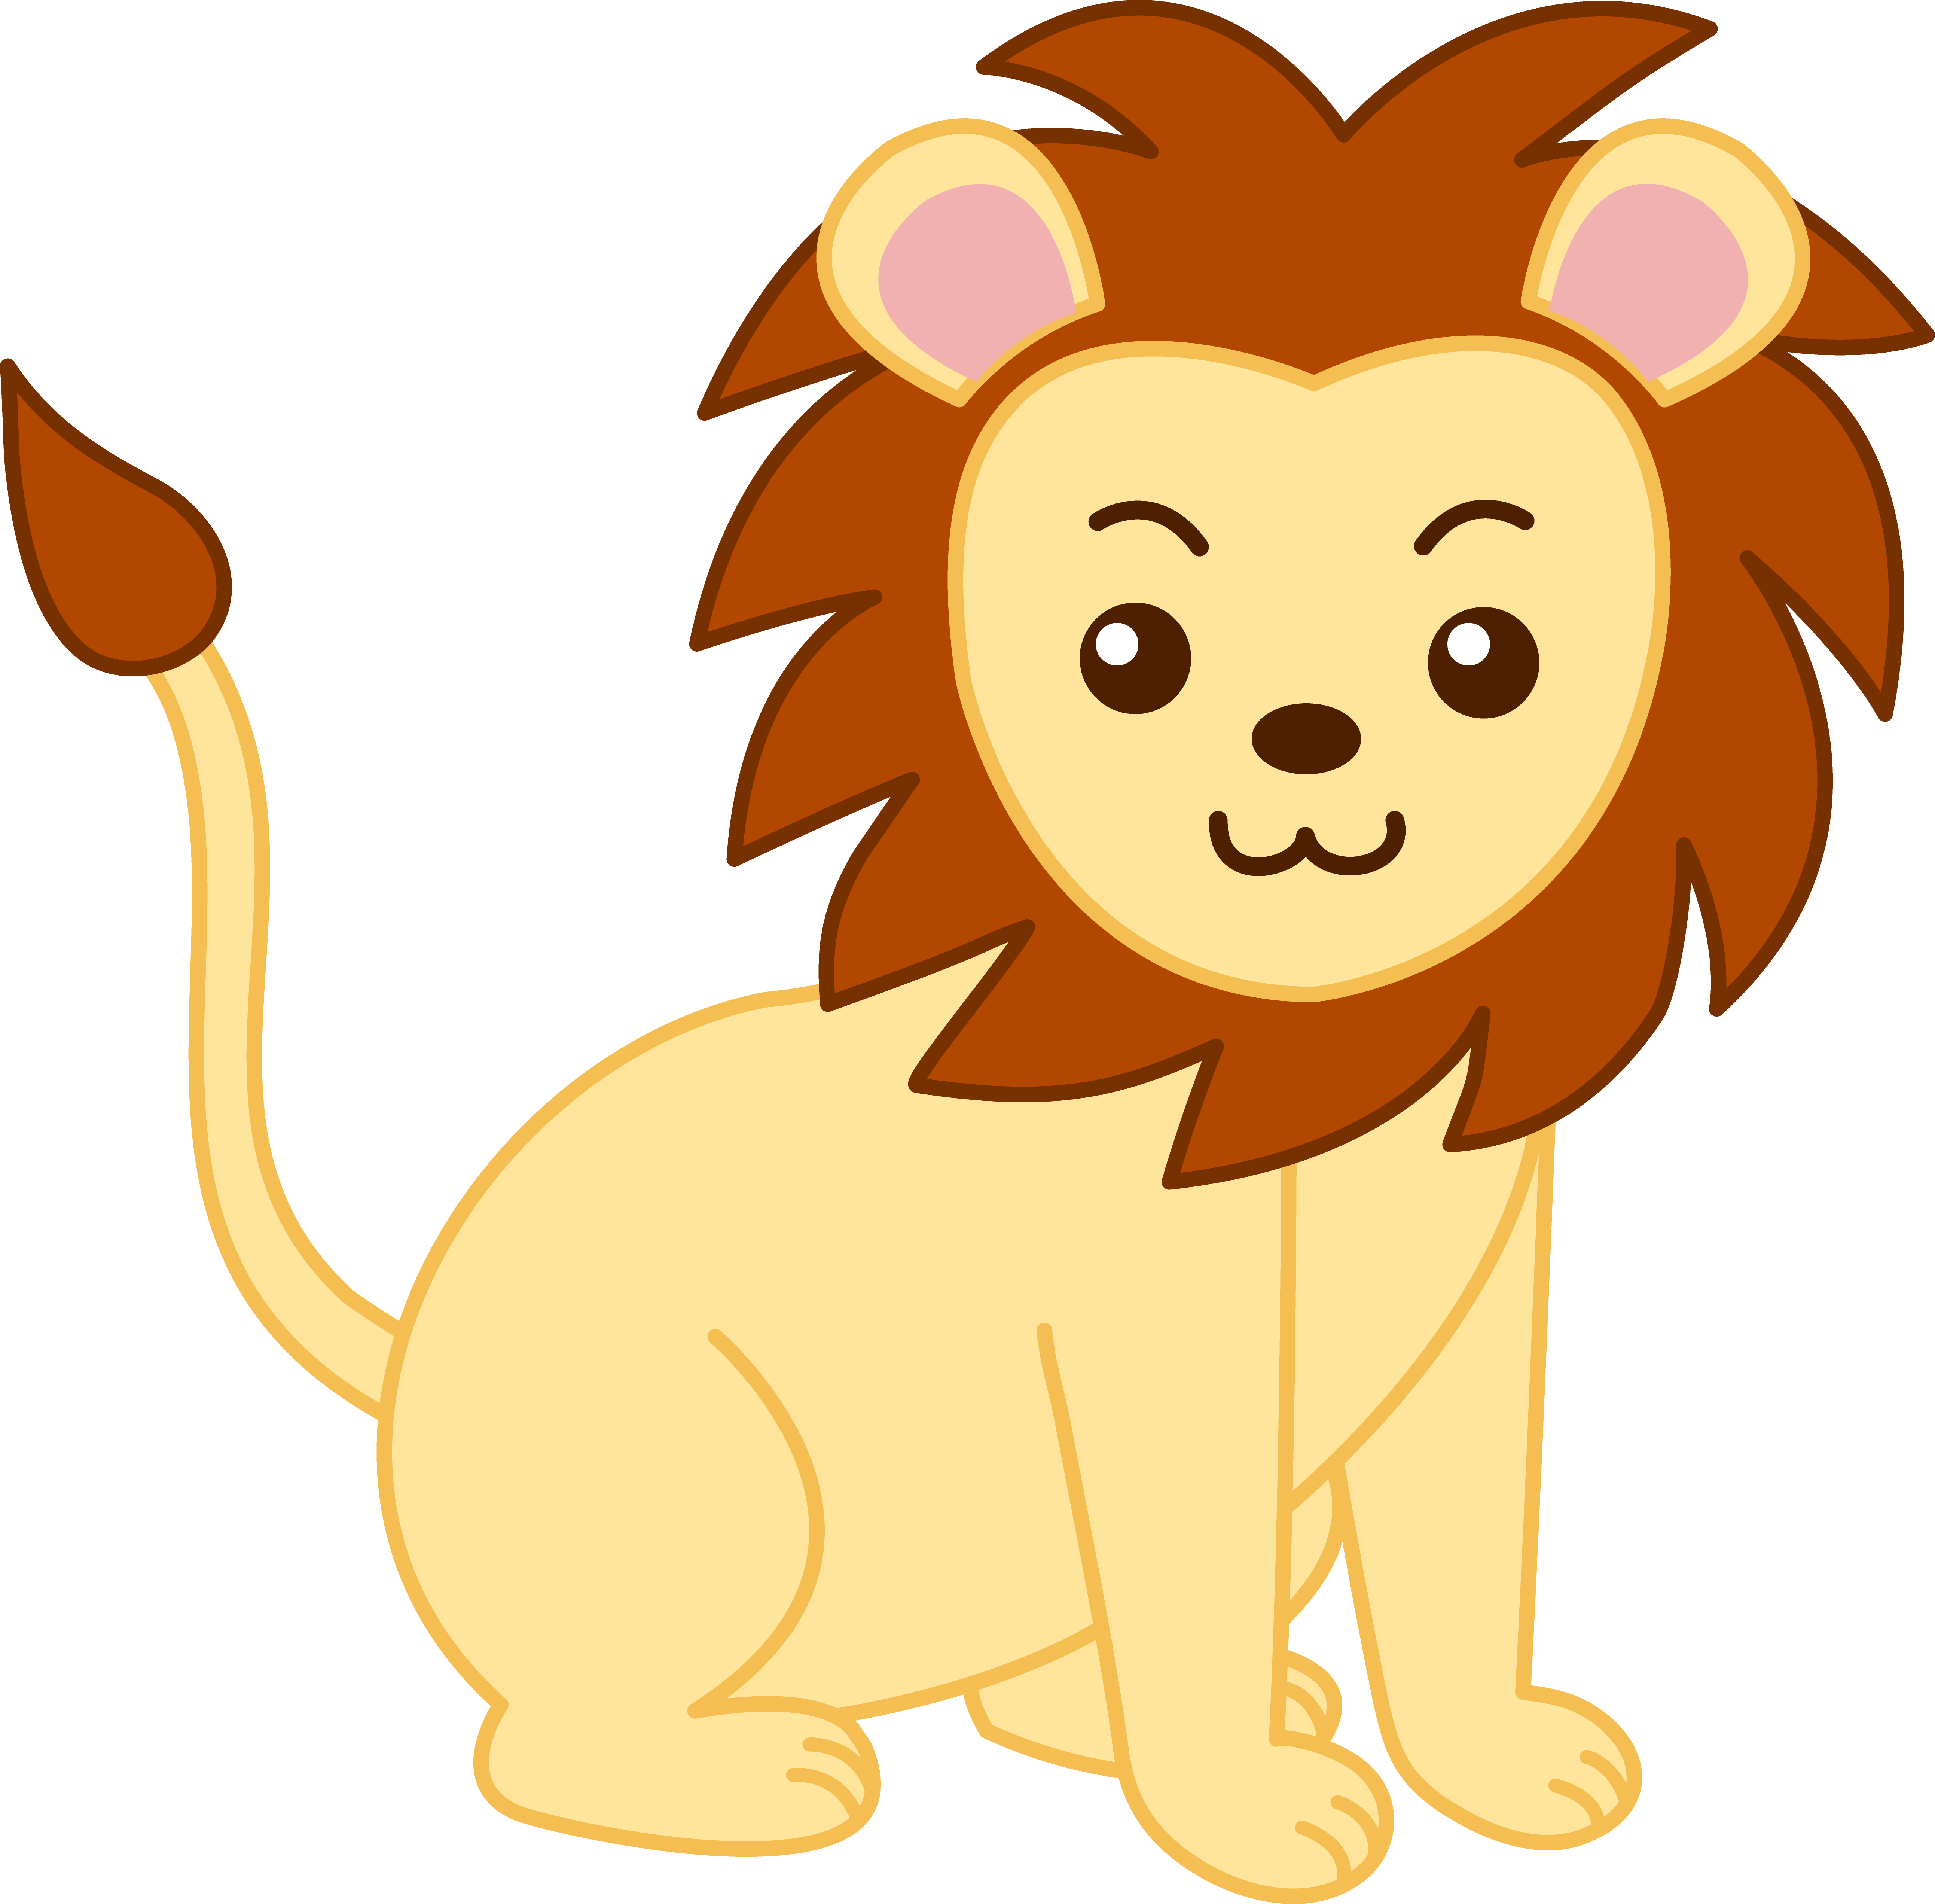 zoo animals clipart - Free Large Images | Animals Pics | Pinterest ...